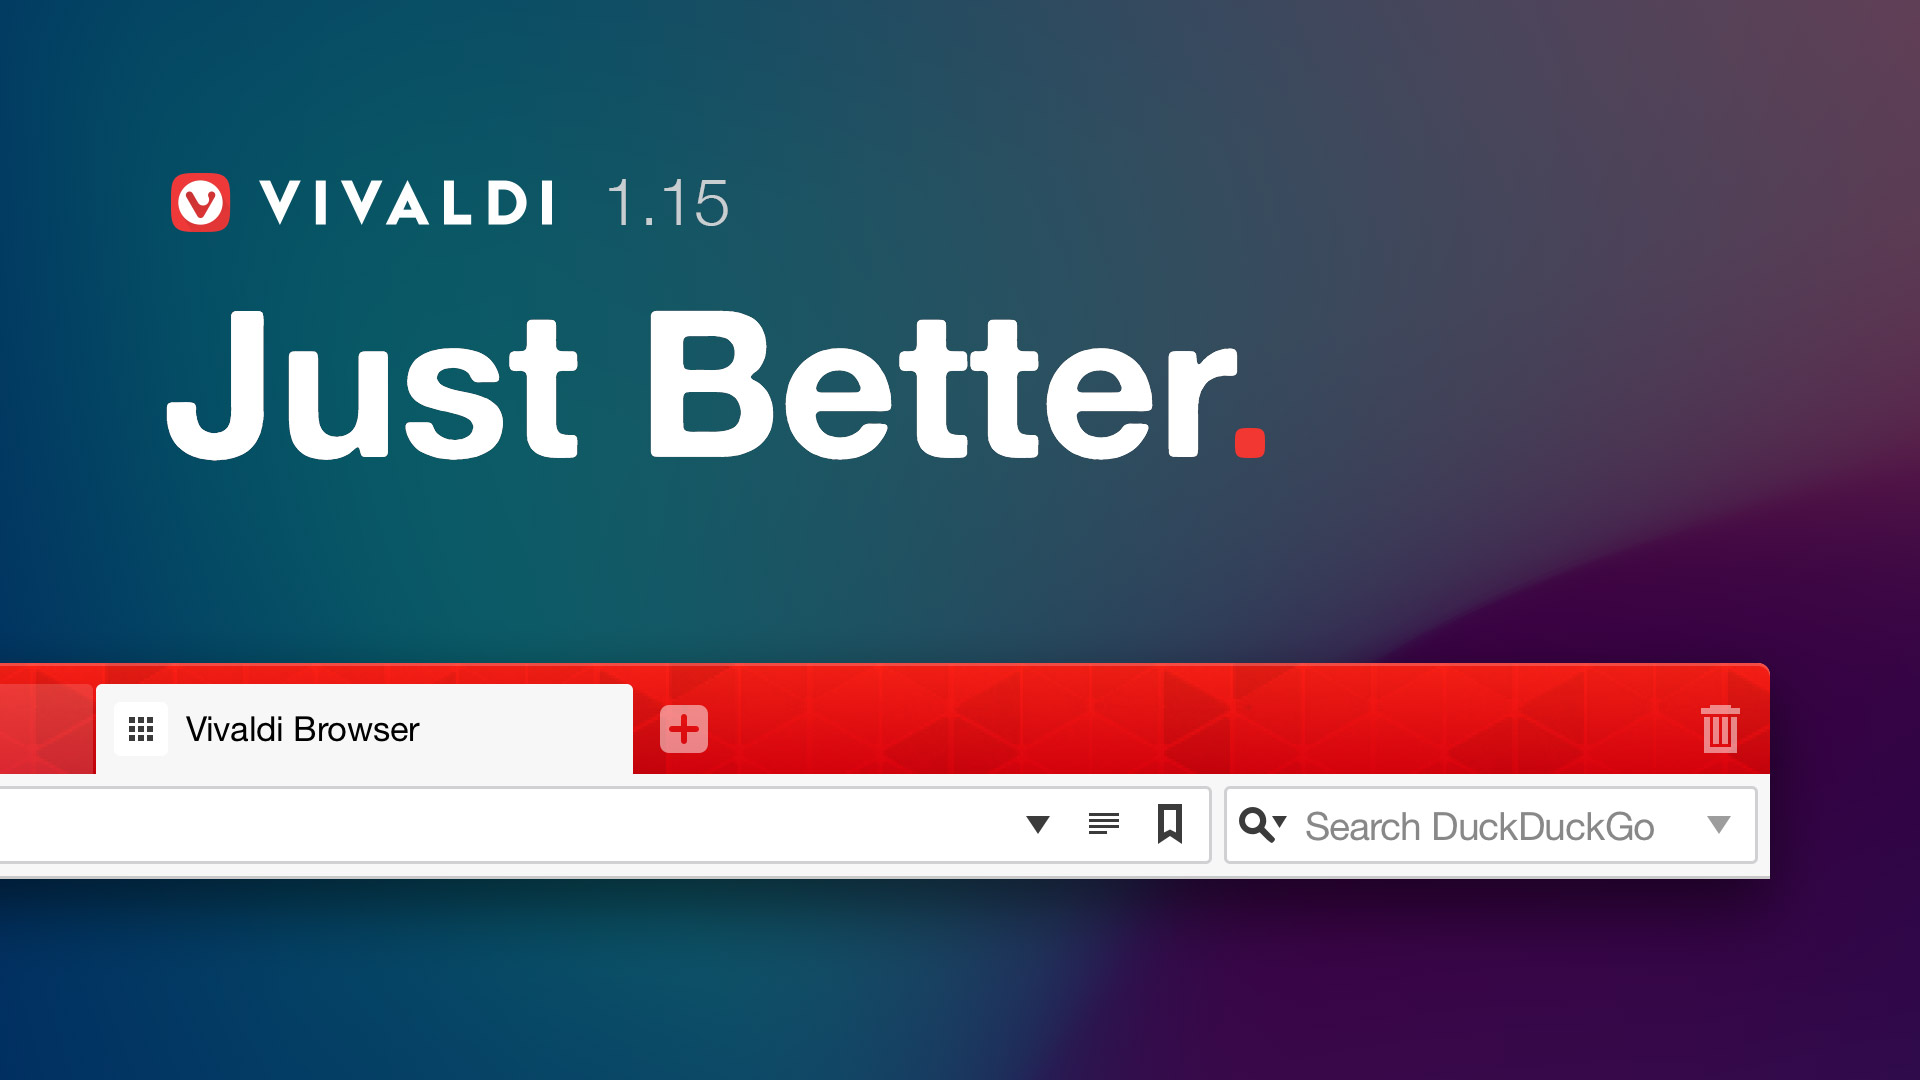 Vivaldi 1.15 – Just better.